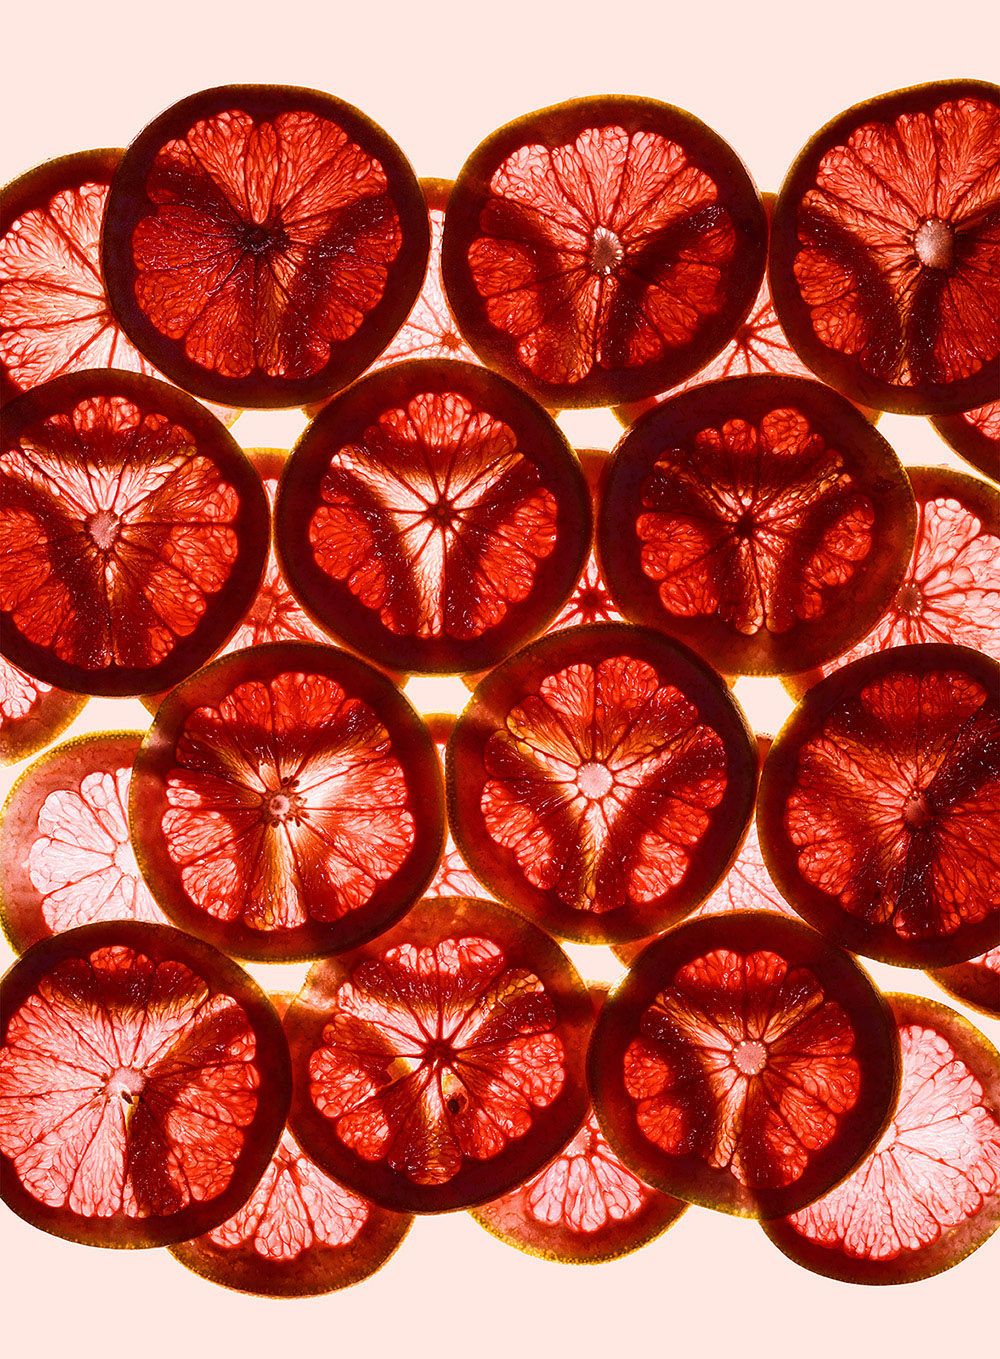 PinkGrapefruitPage_BackgroundLayered